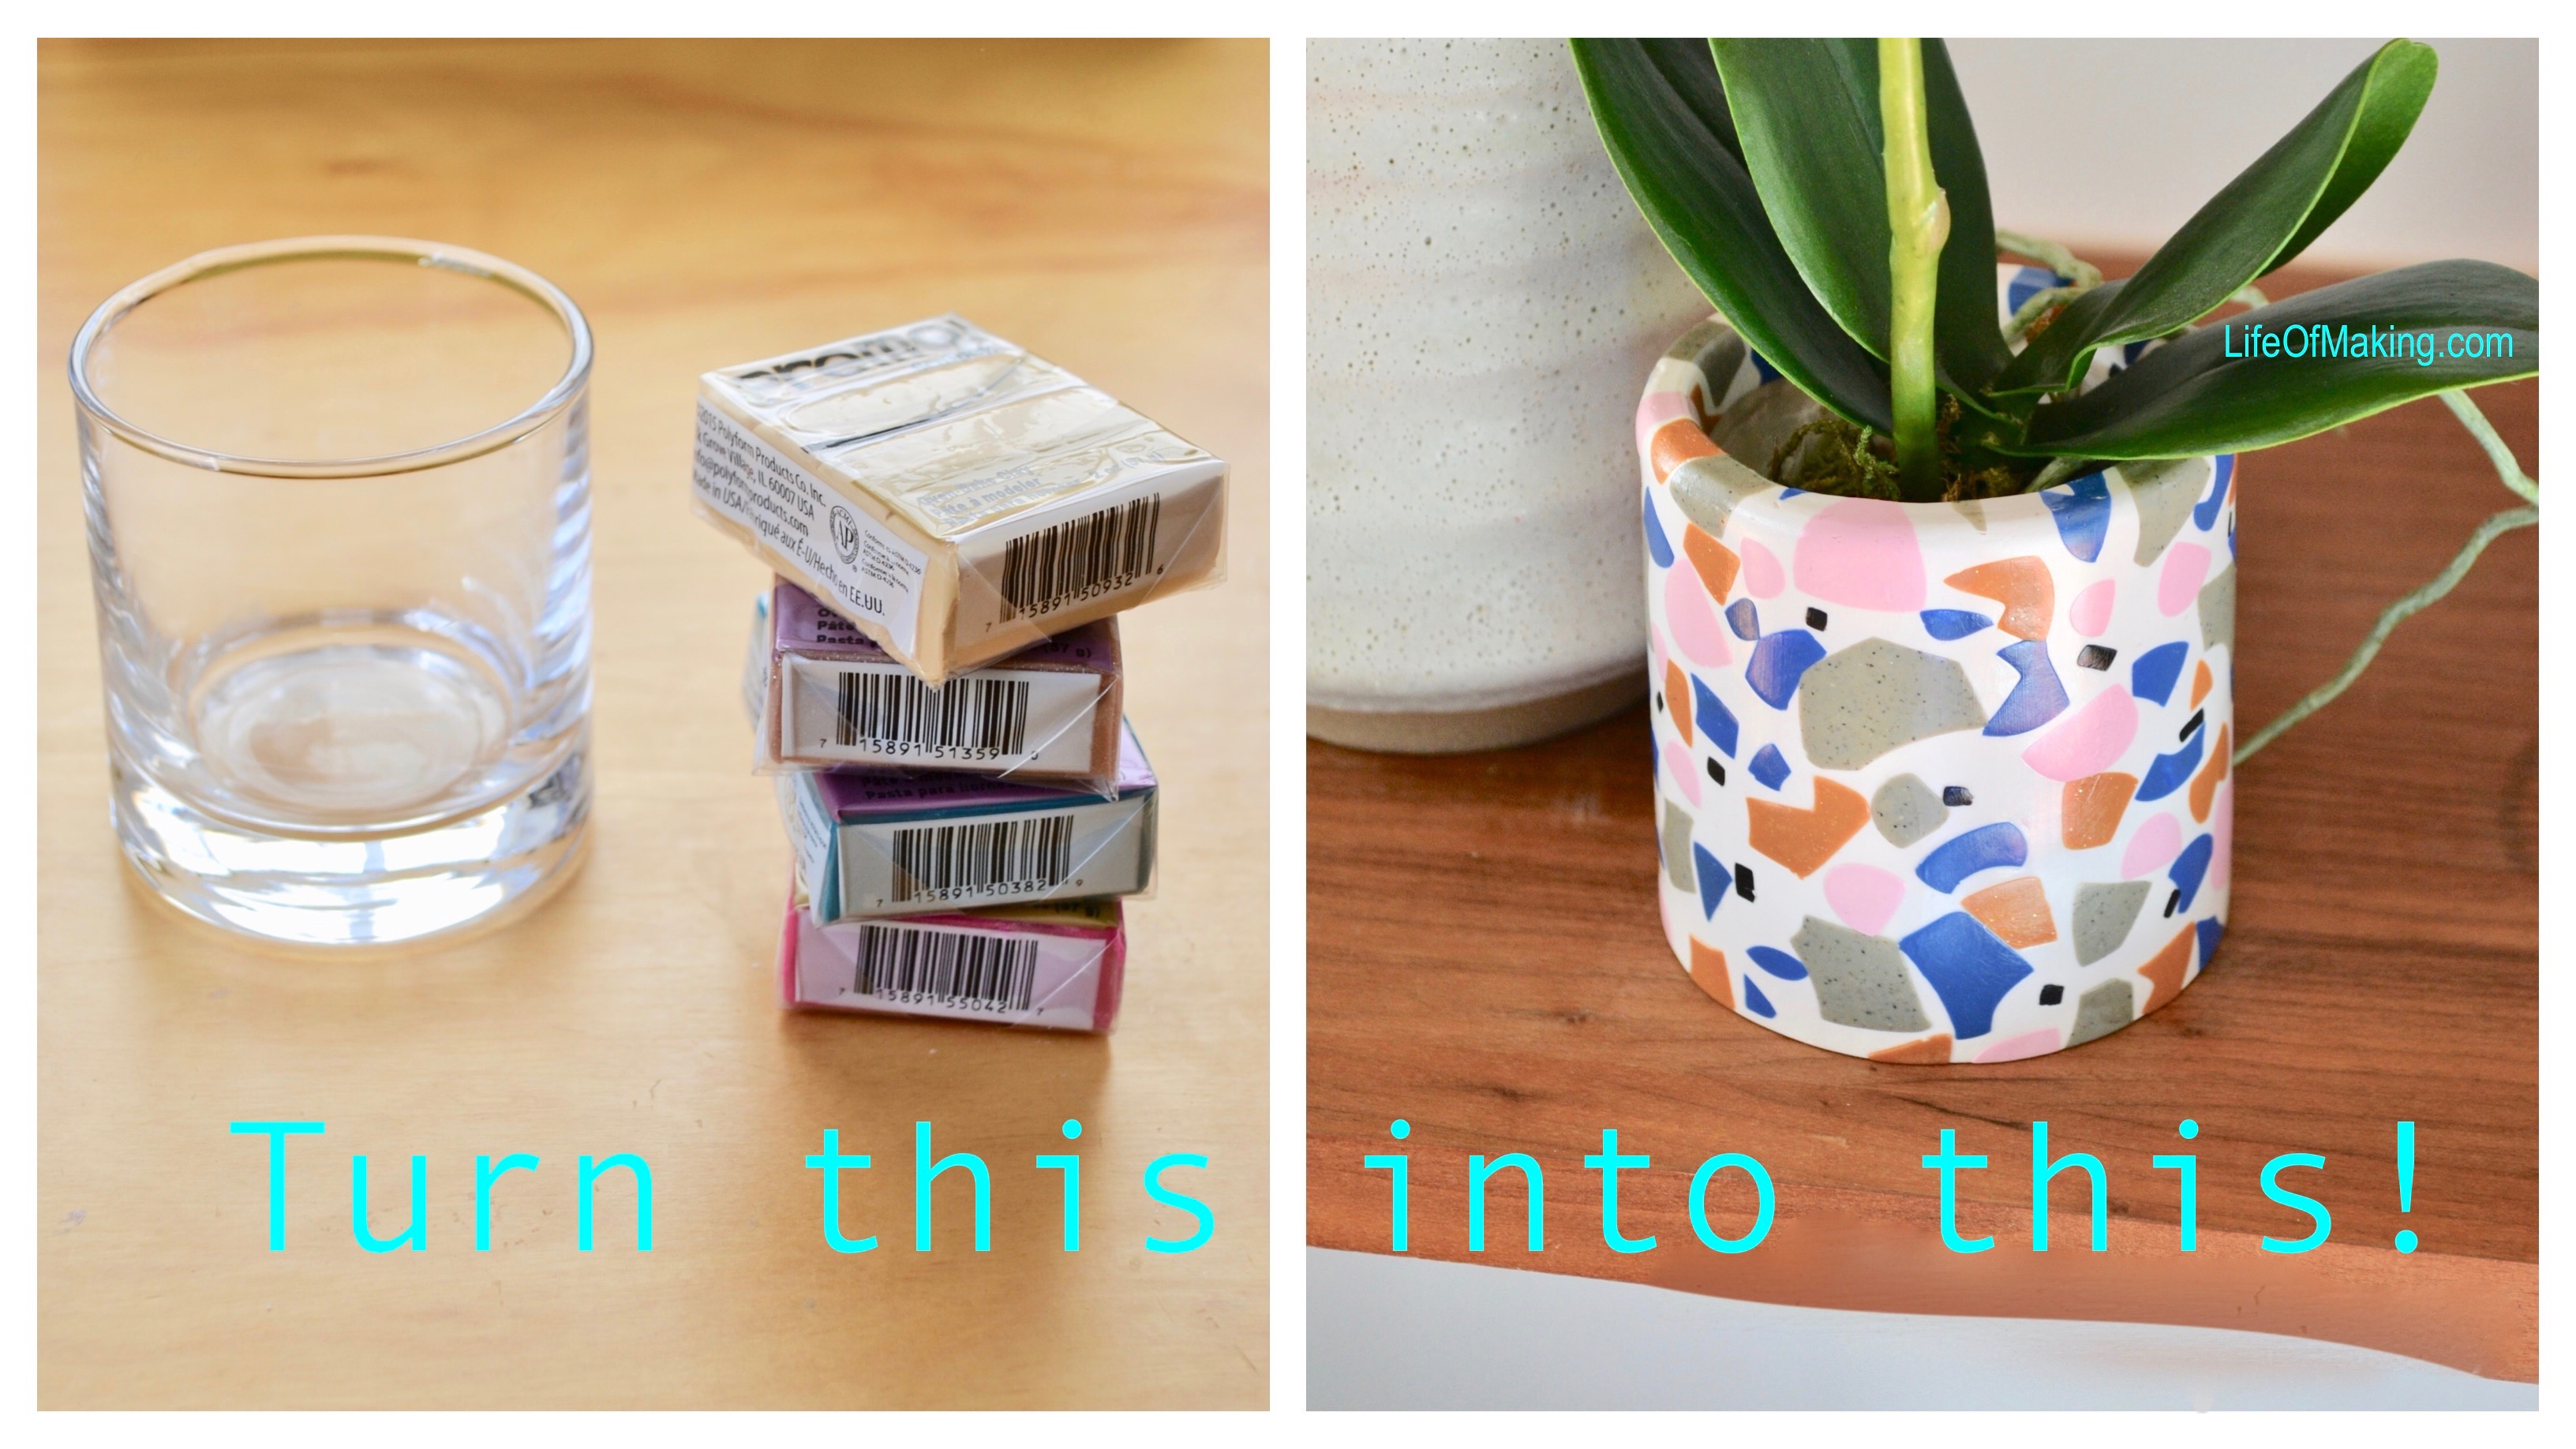 Make DIY Terrazzo Style Planter from Polymer clay